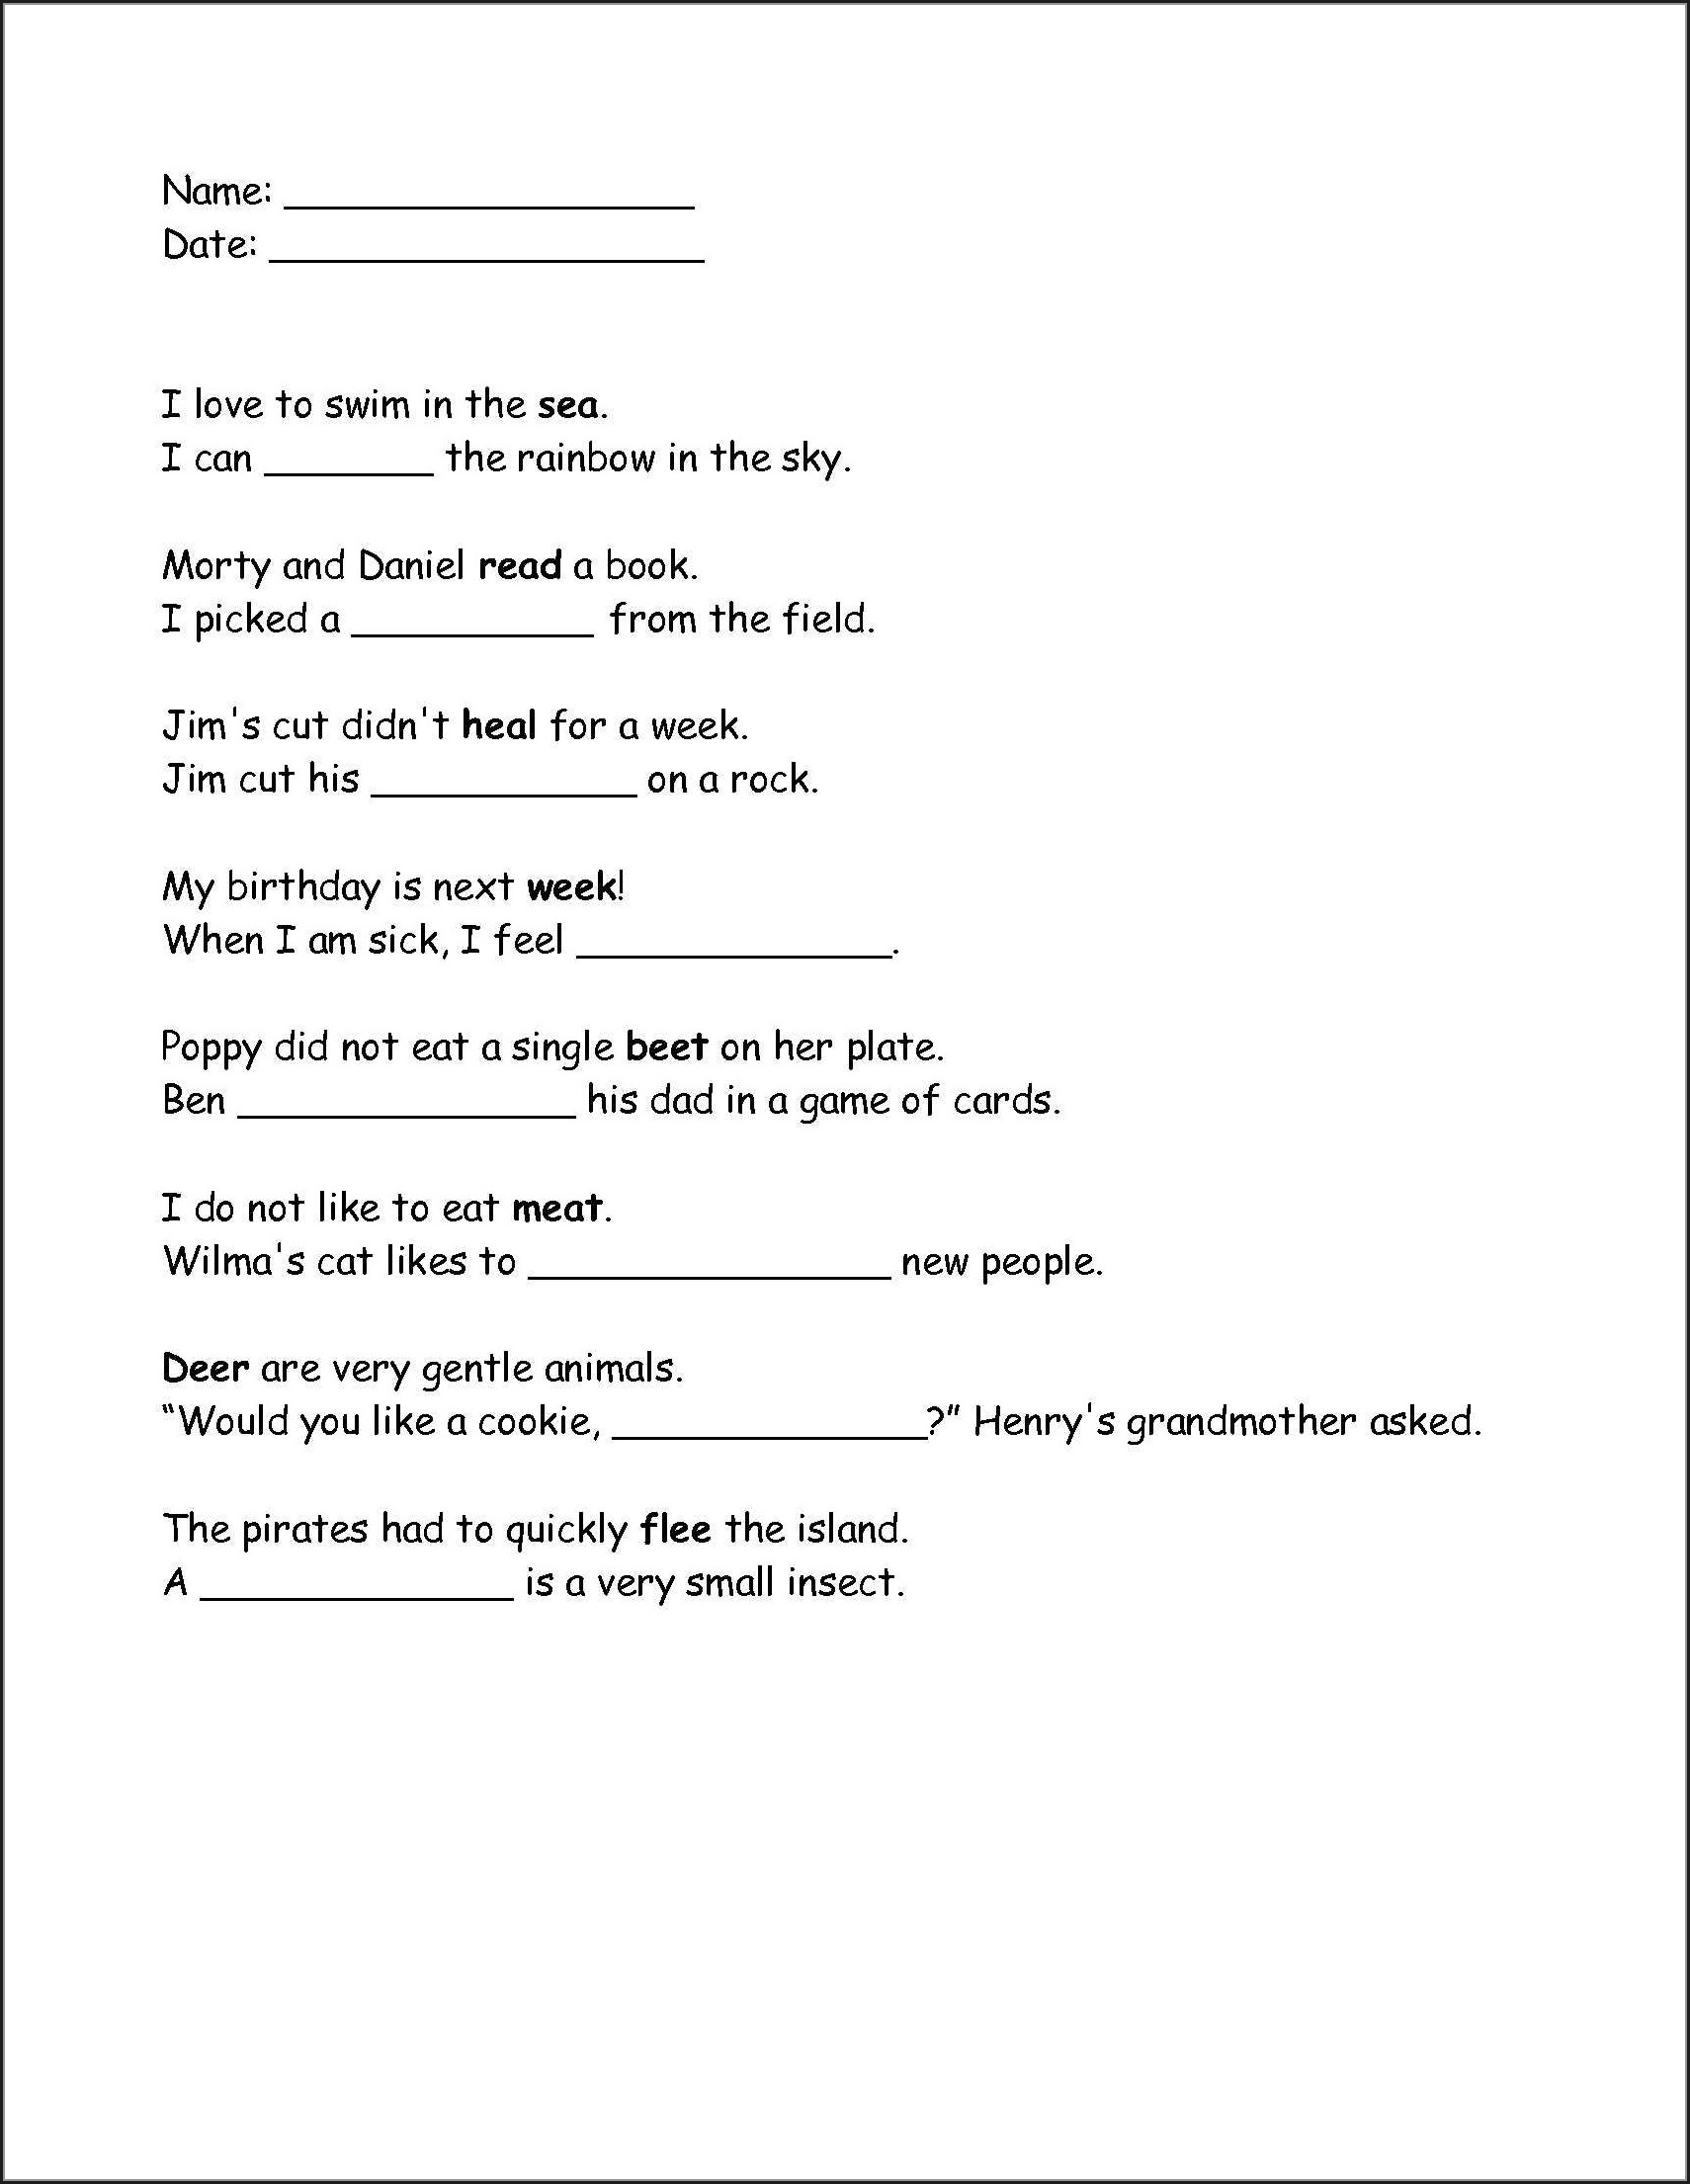 Grade 4 Homophones Worksheets